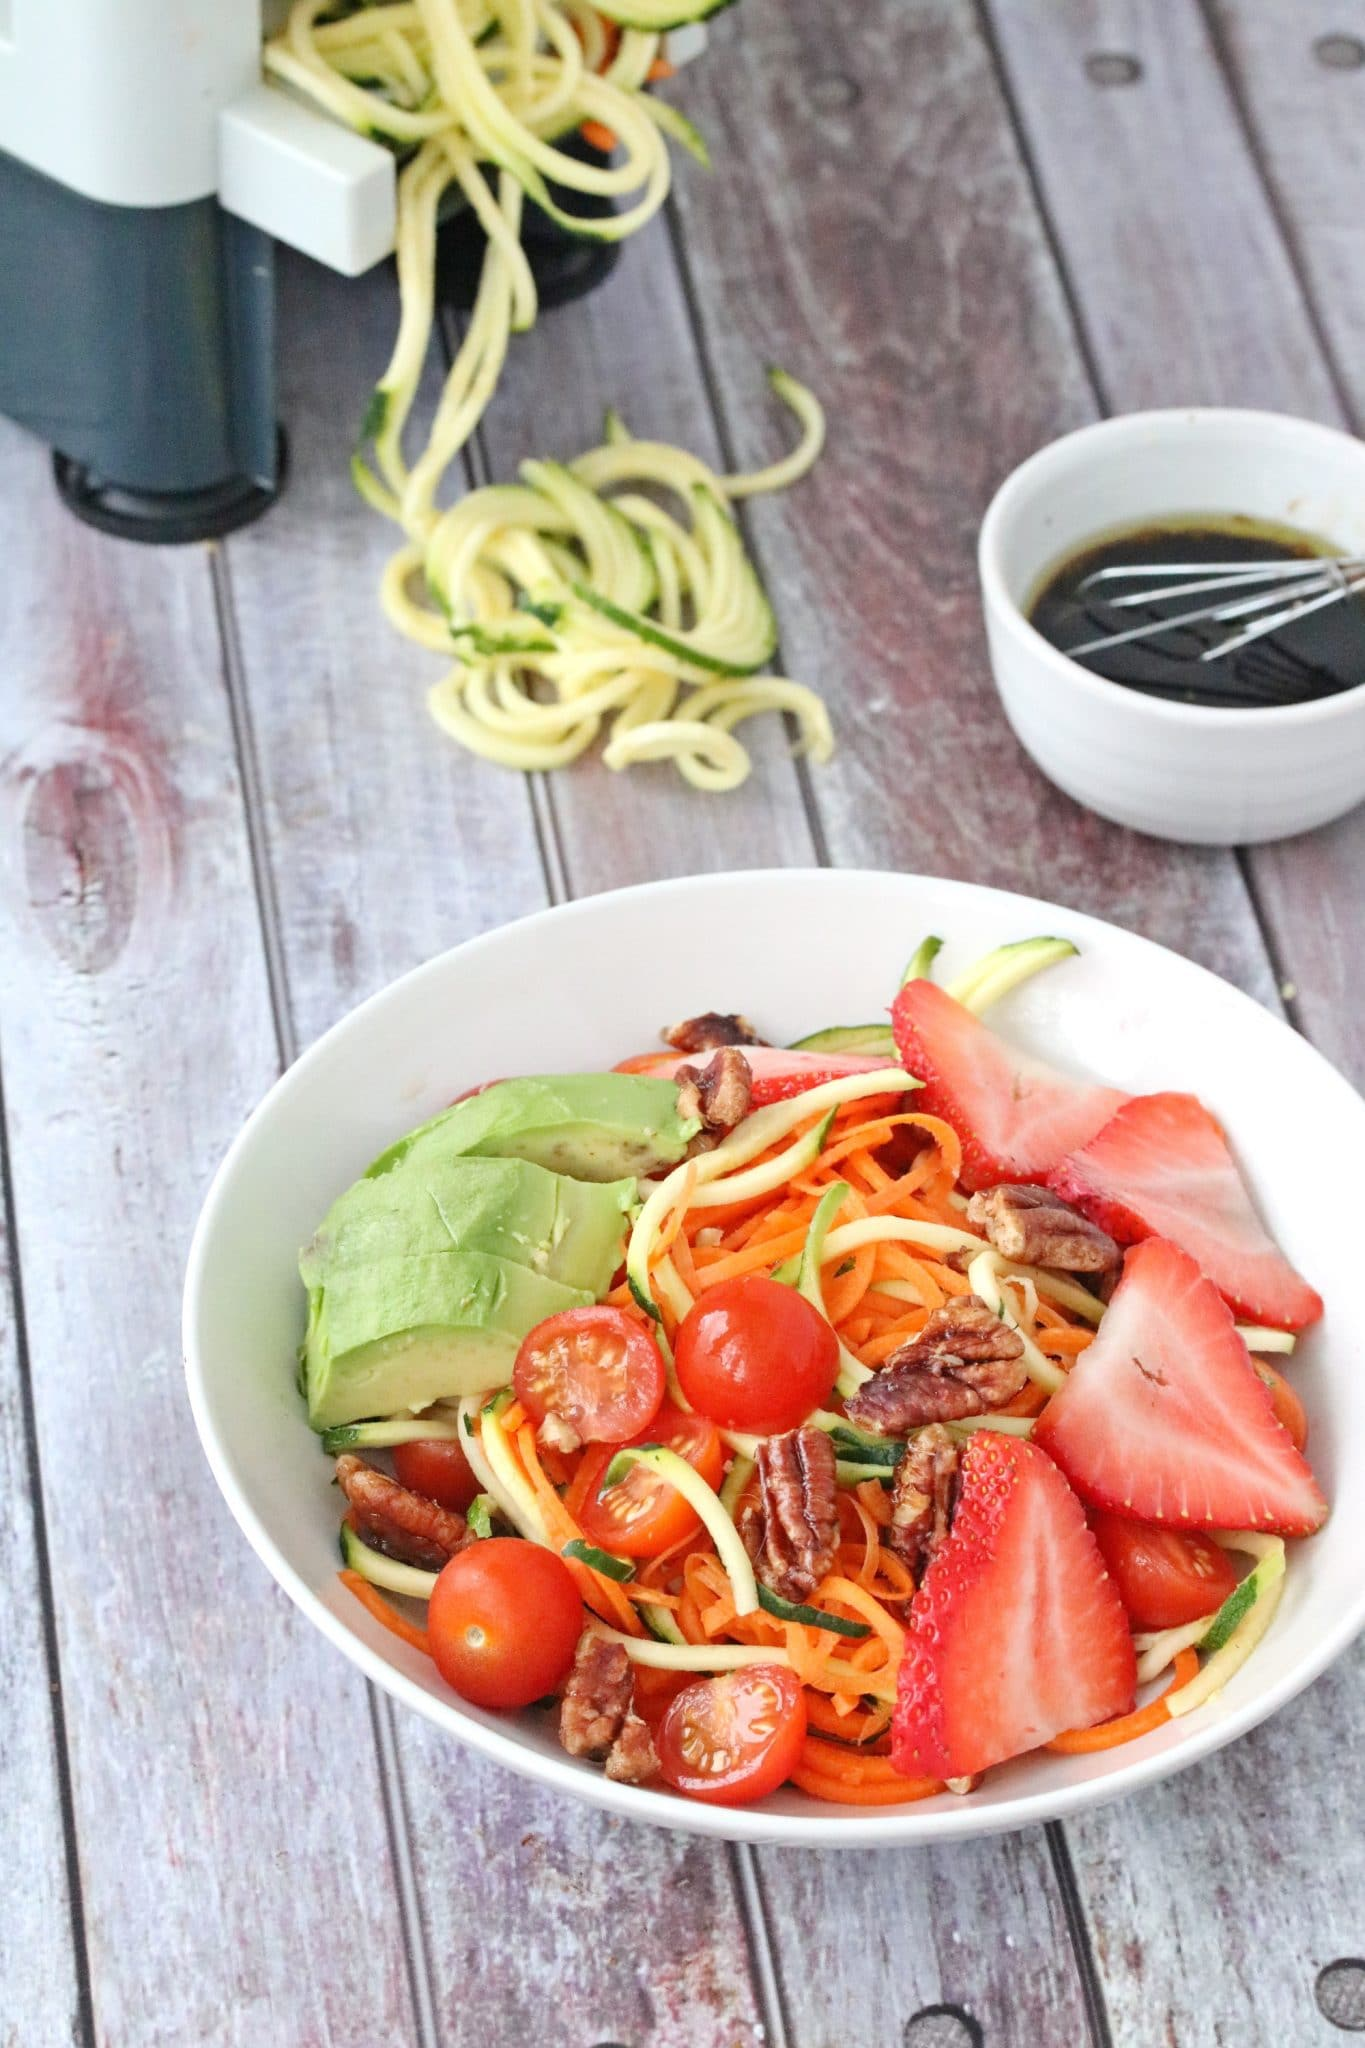 Spiralized zucchini salad topped with strawberries, avocado and pecans with dressing and zucchini noodles behind it